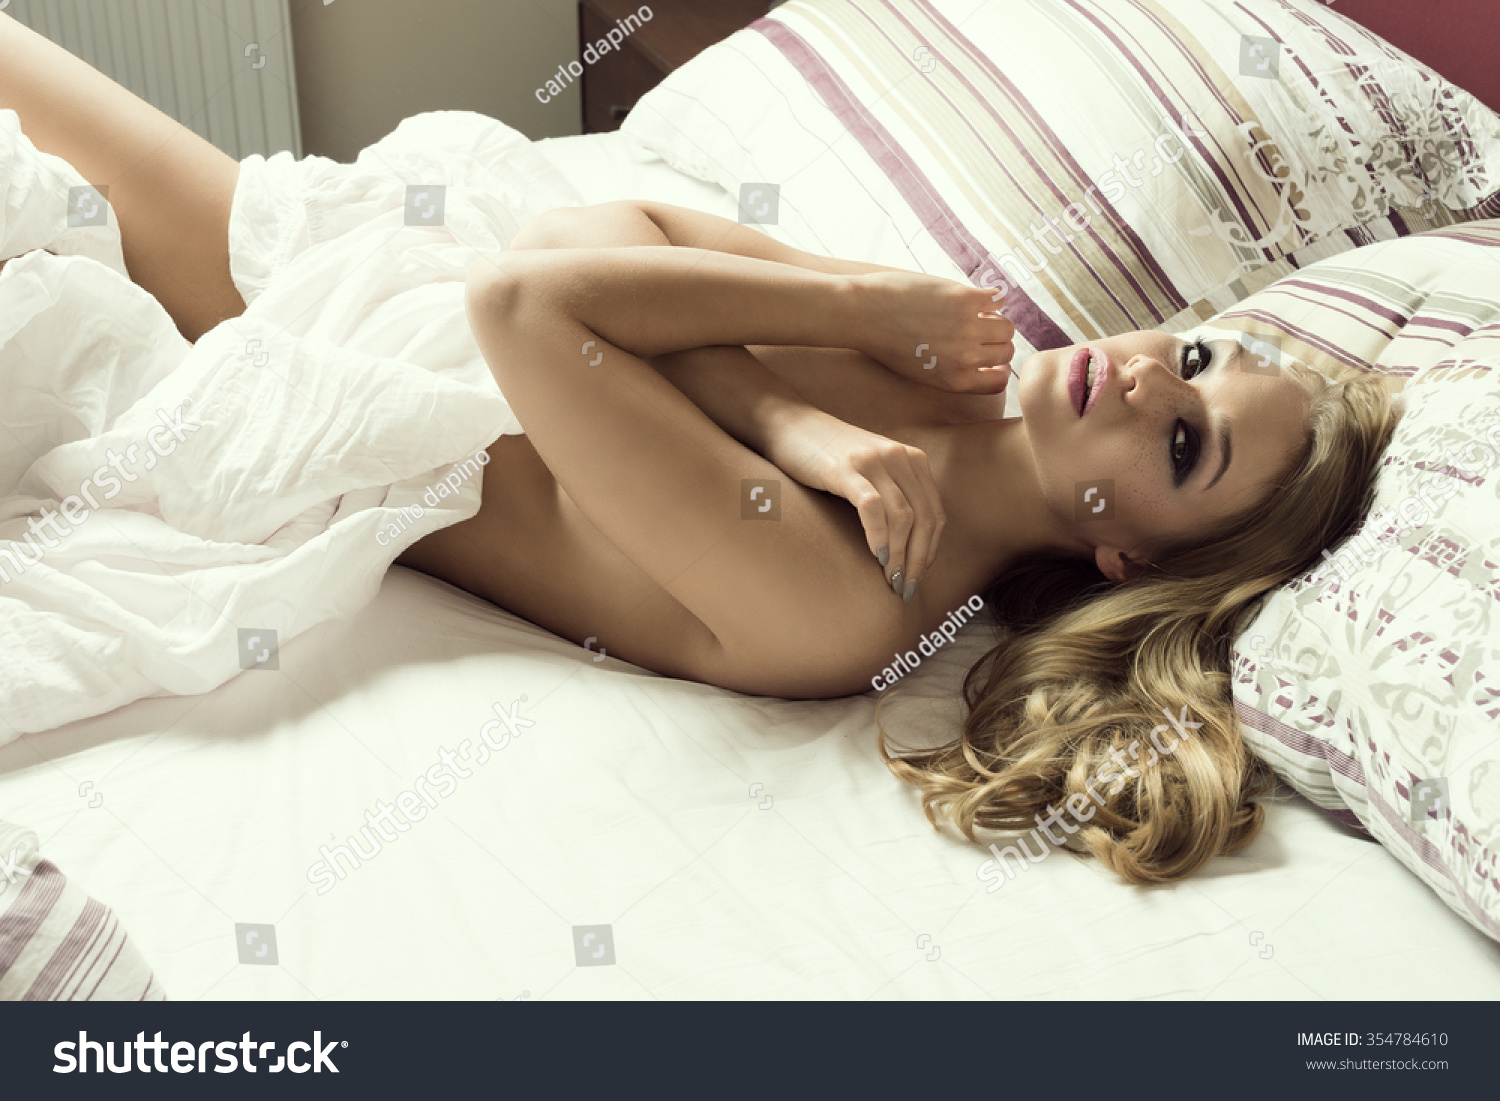 She very sensually extracts all his cum with her hand and mouth 4